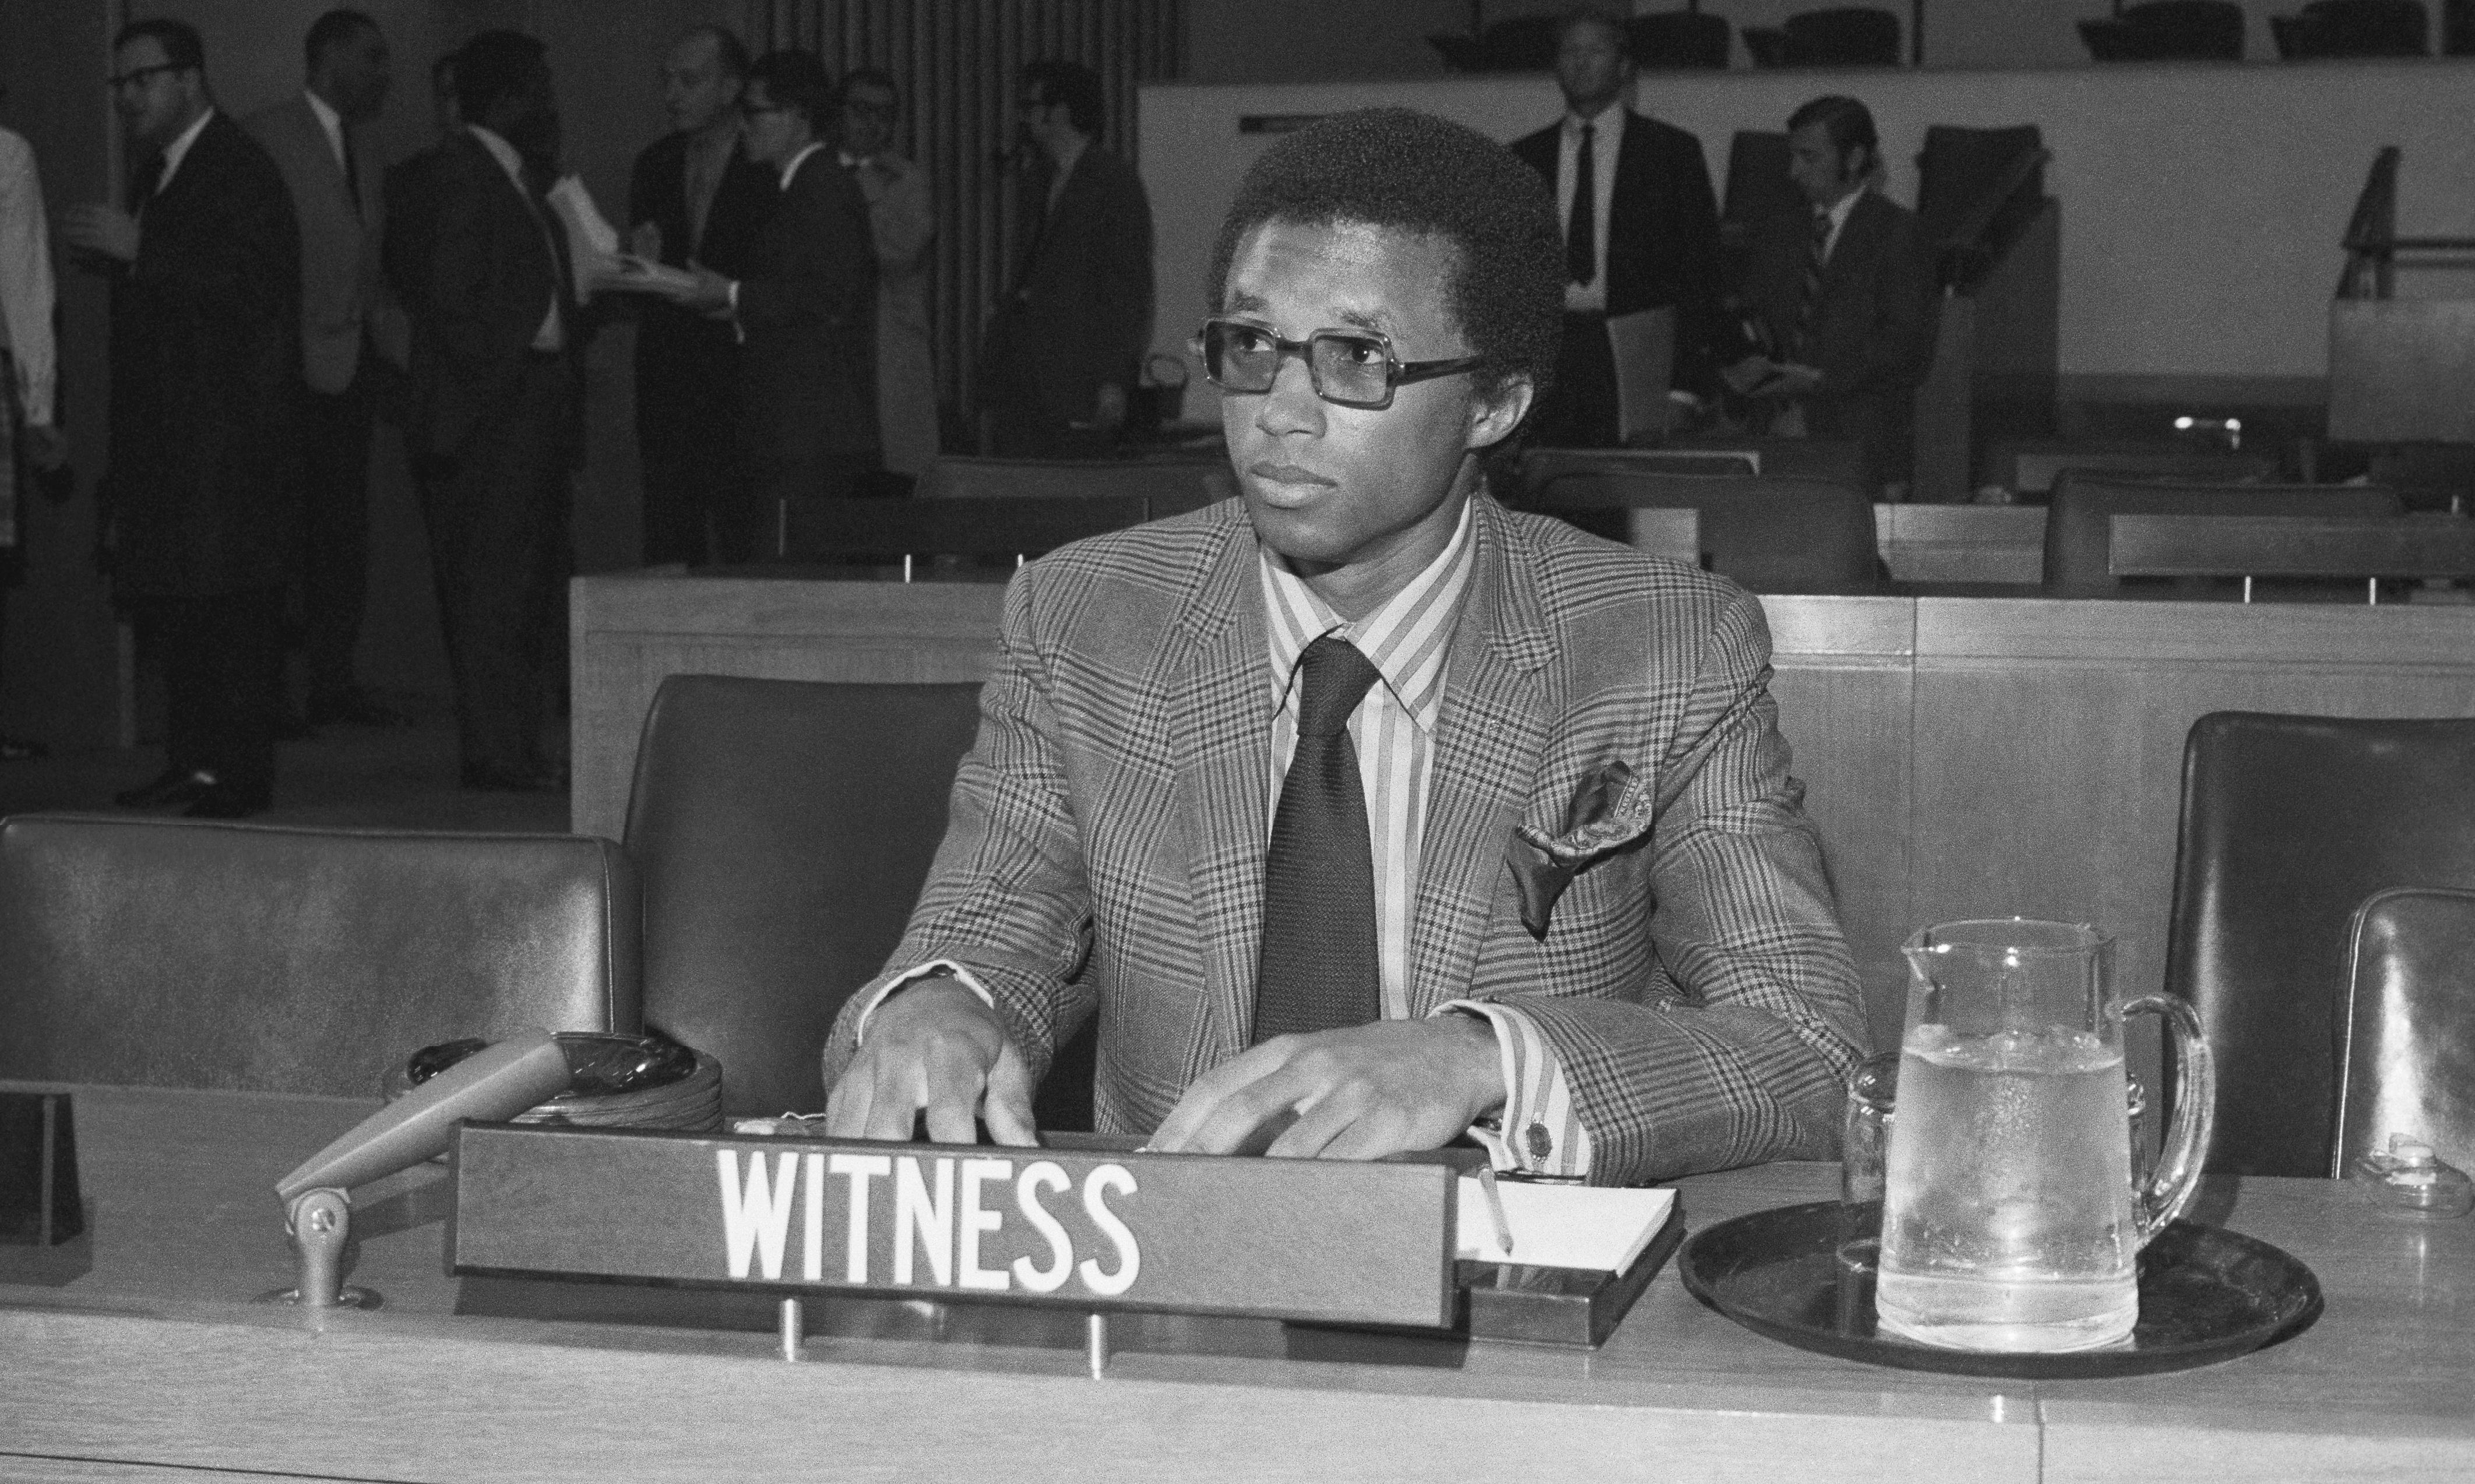 Arthur Ashe's real legacy was his activism, not his tennis